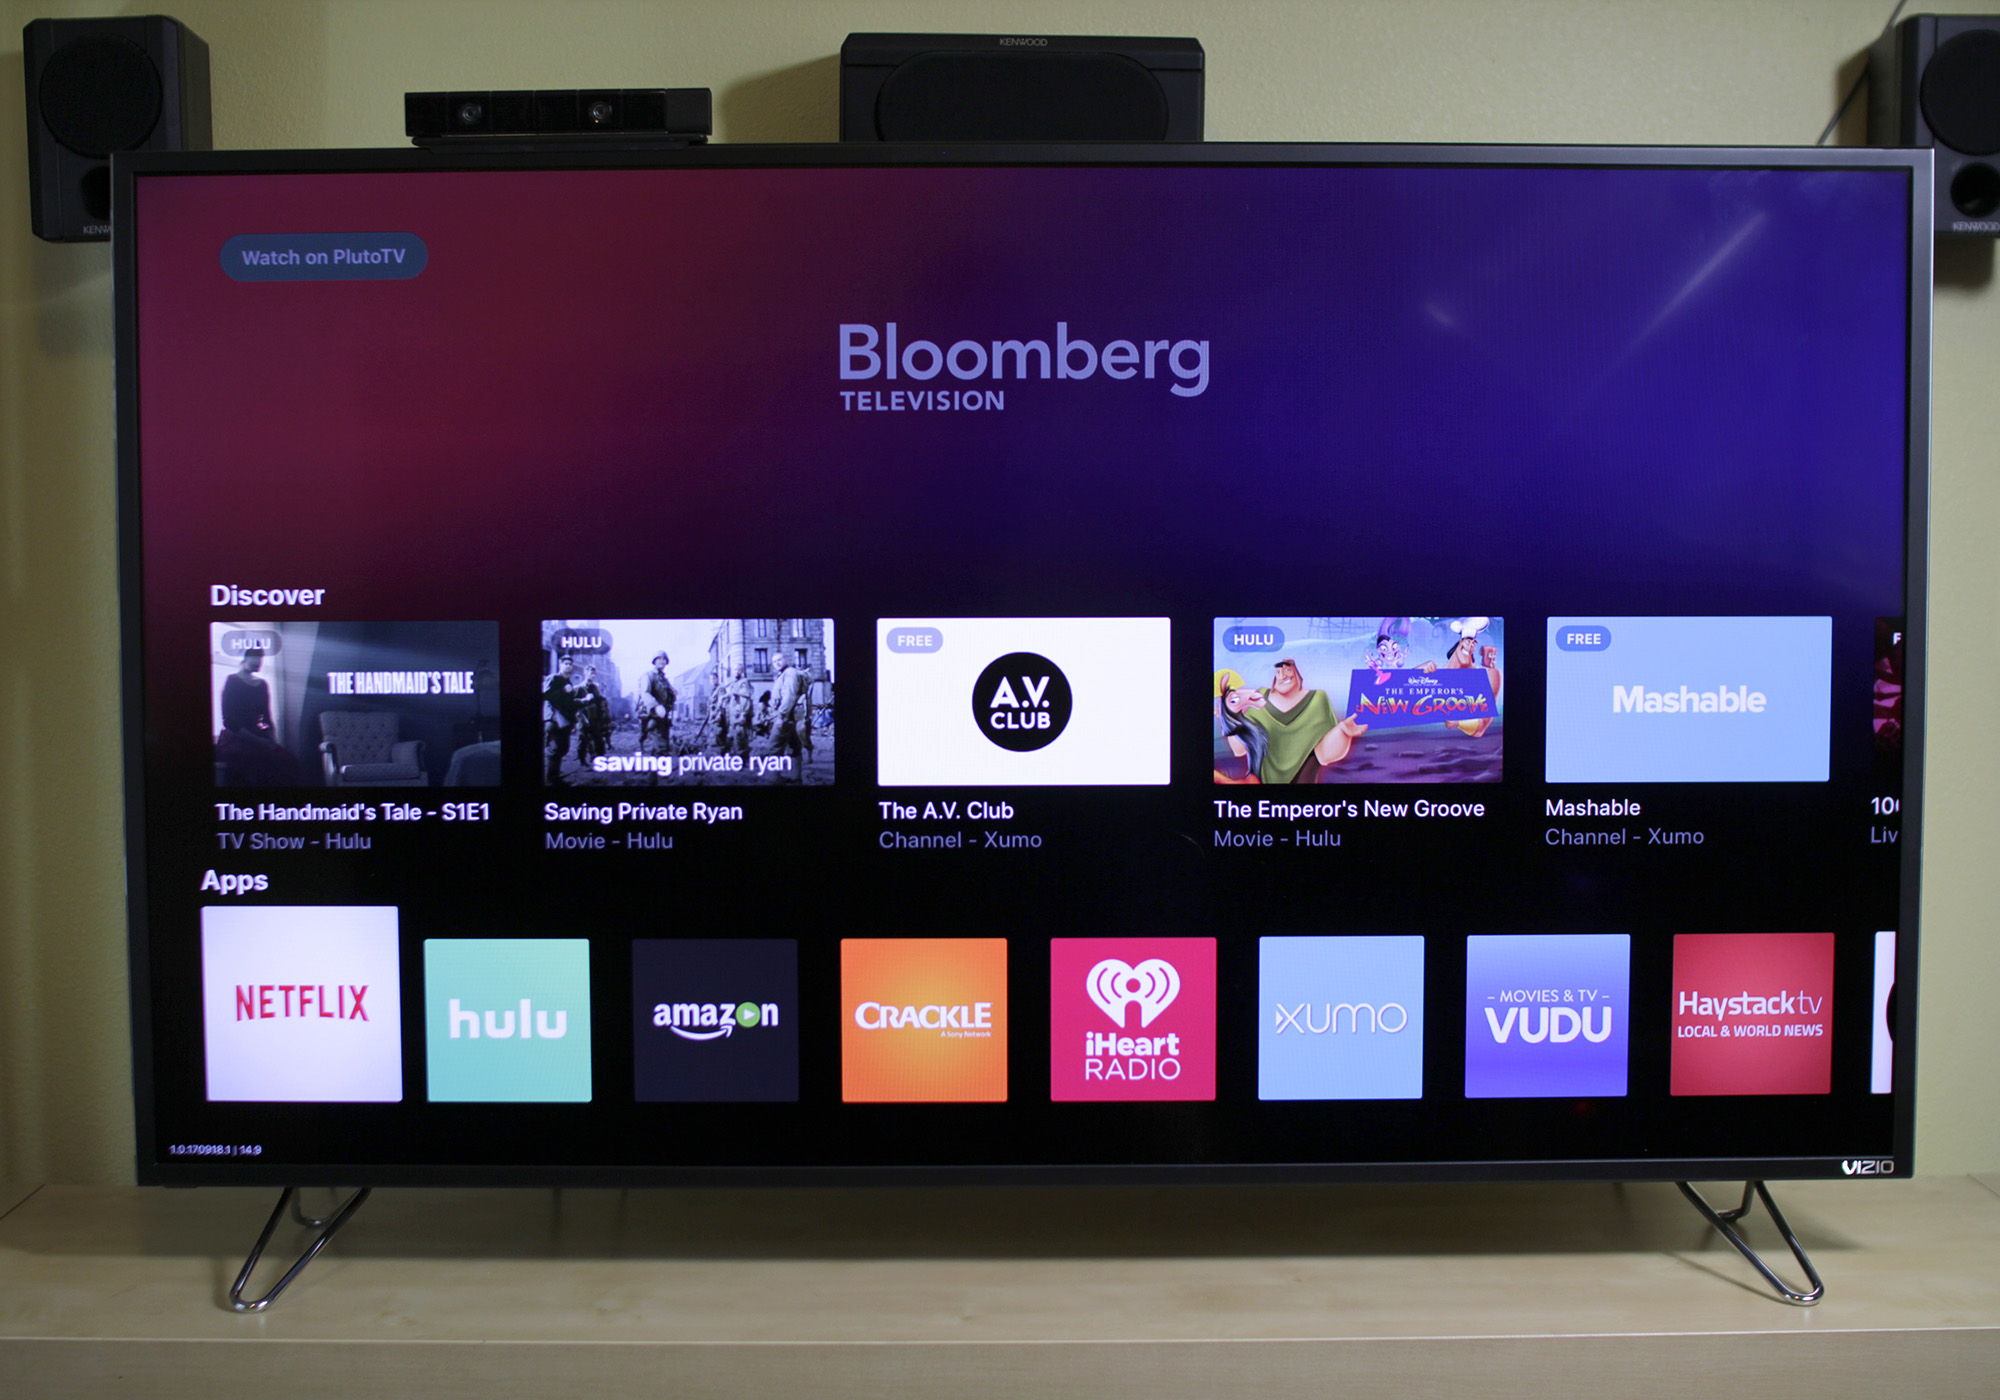 Viewing the Vizio M series XLED 2017 TV with 4K and HDR